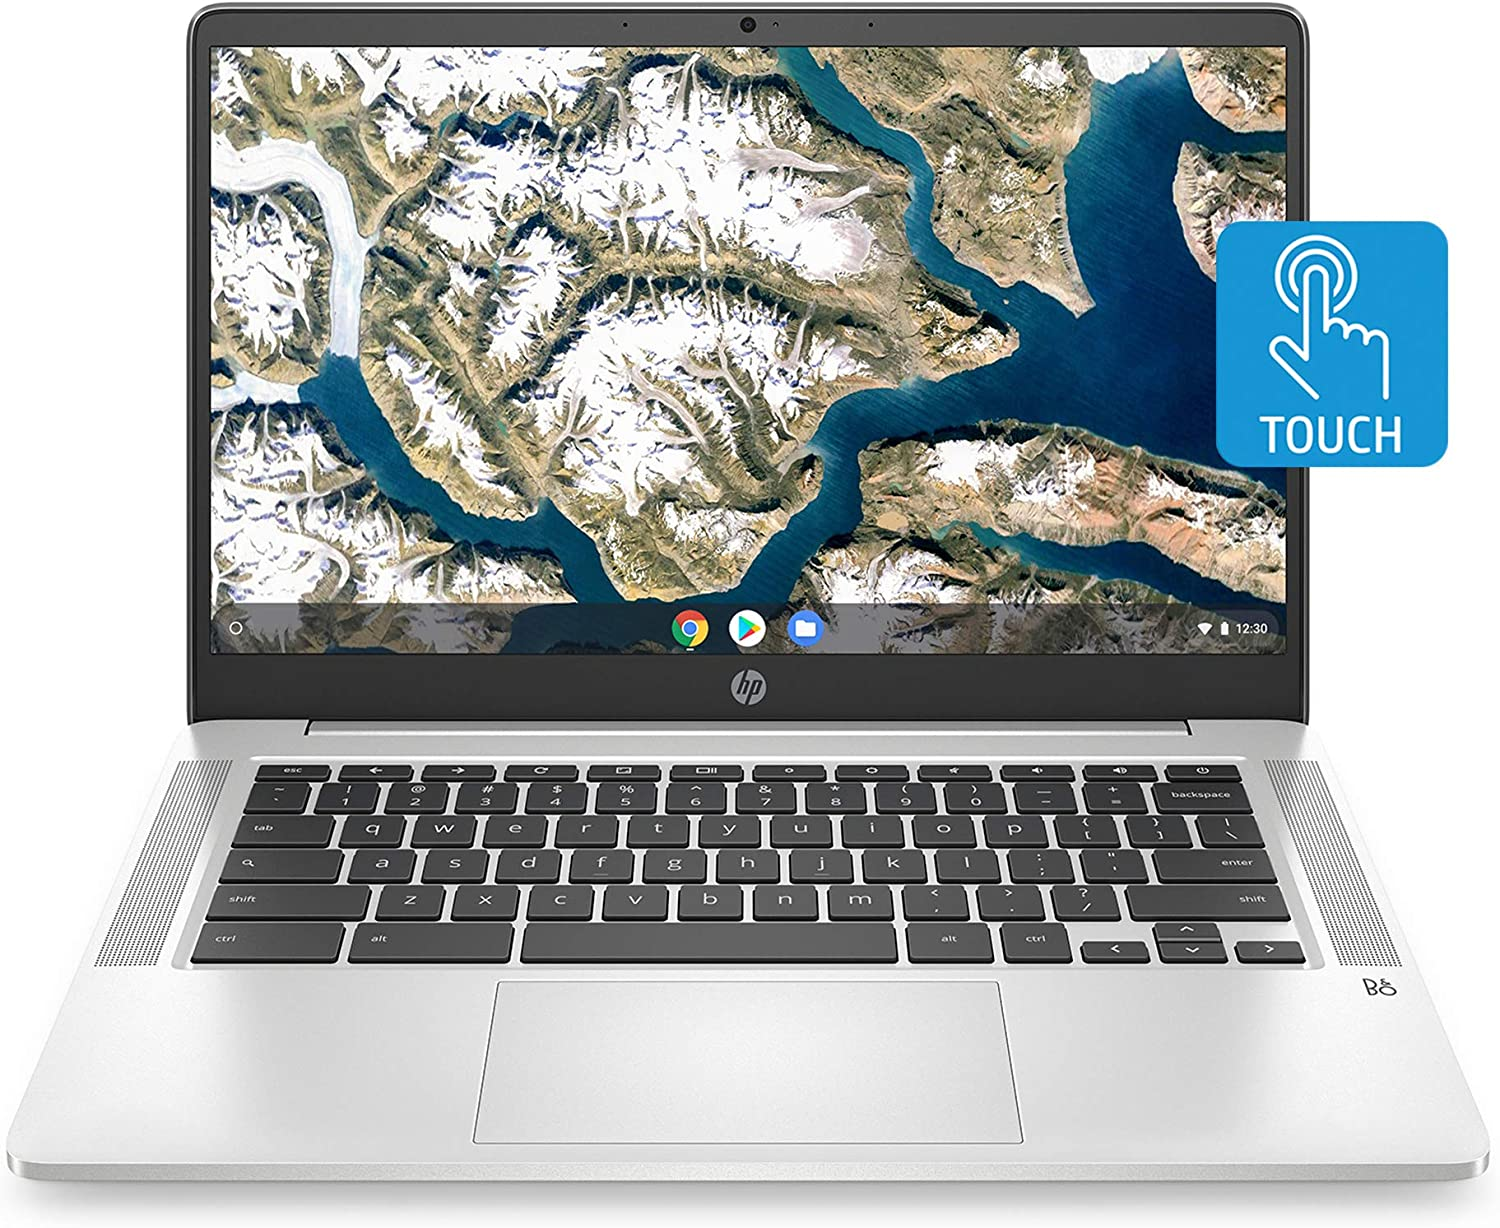 HP Chromebook 14-inch HD Touchscreen Laptop, Intel Celeron N4000, 4 GB RAM, 32 GB eMMC, Chrome (14a-na0030nr, Mineral Silver)